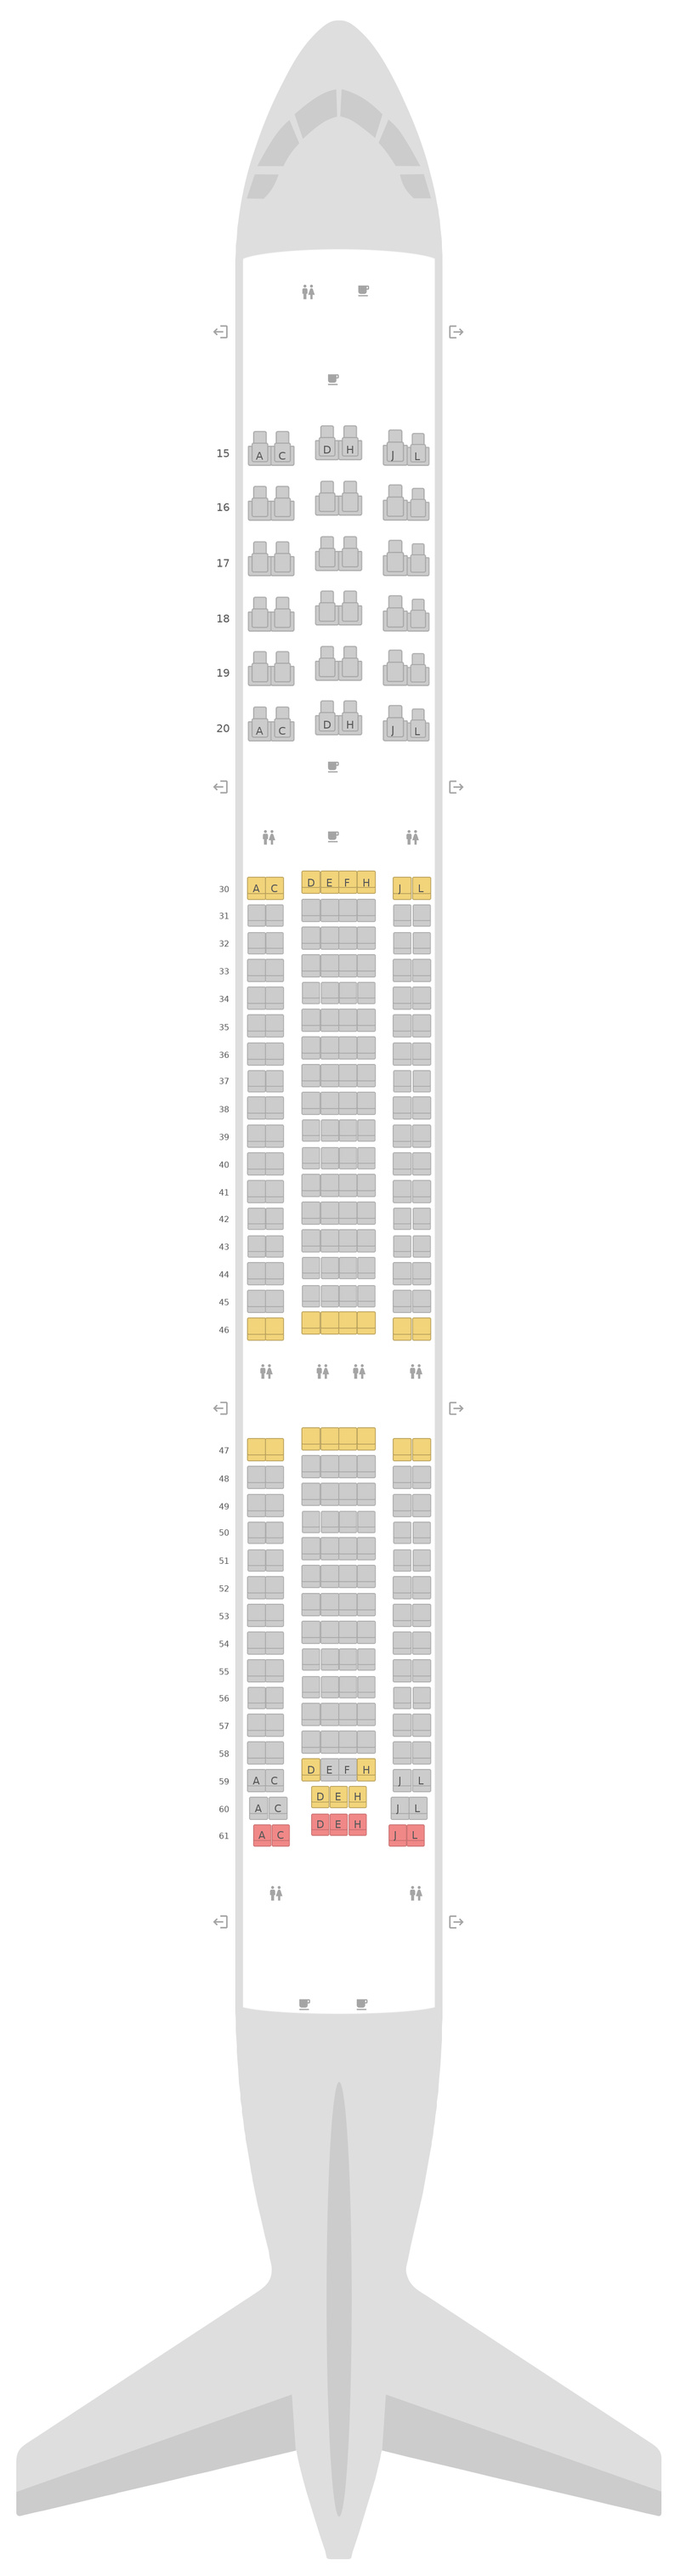 Seat Map Airbus A330-300 (333) v2 Saudi Arabian Airlines